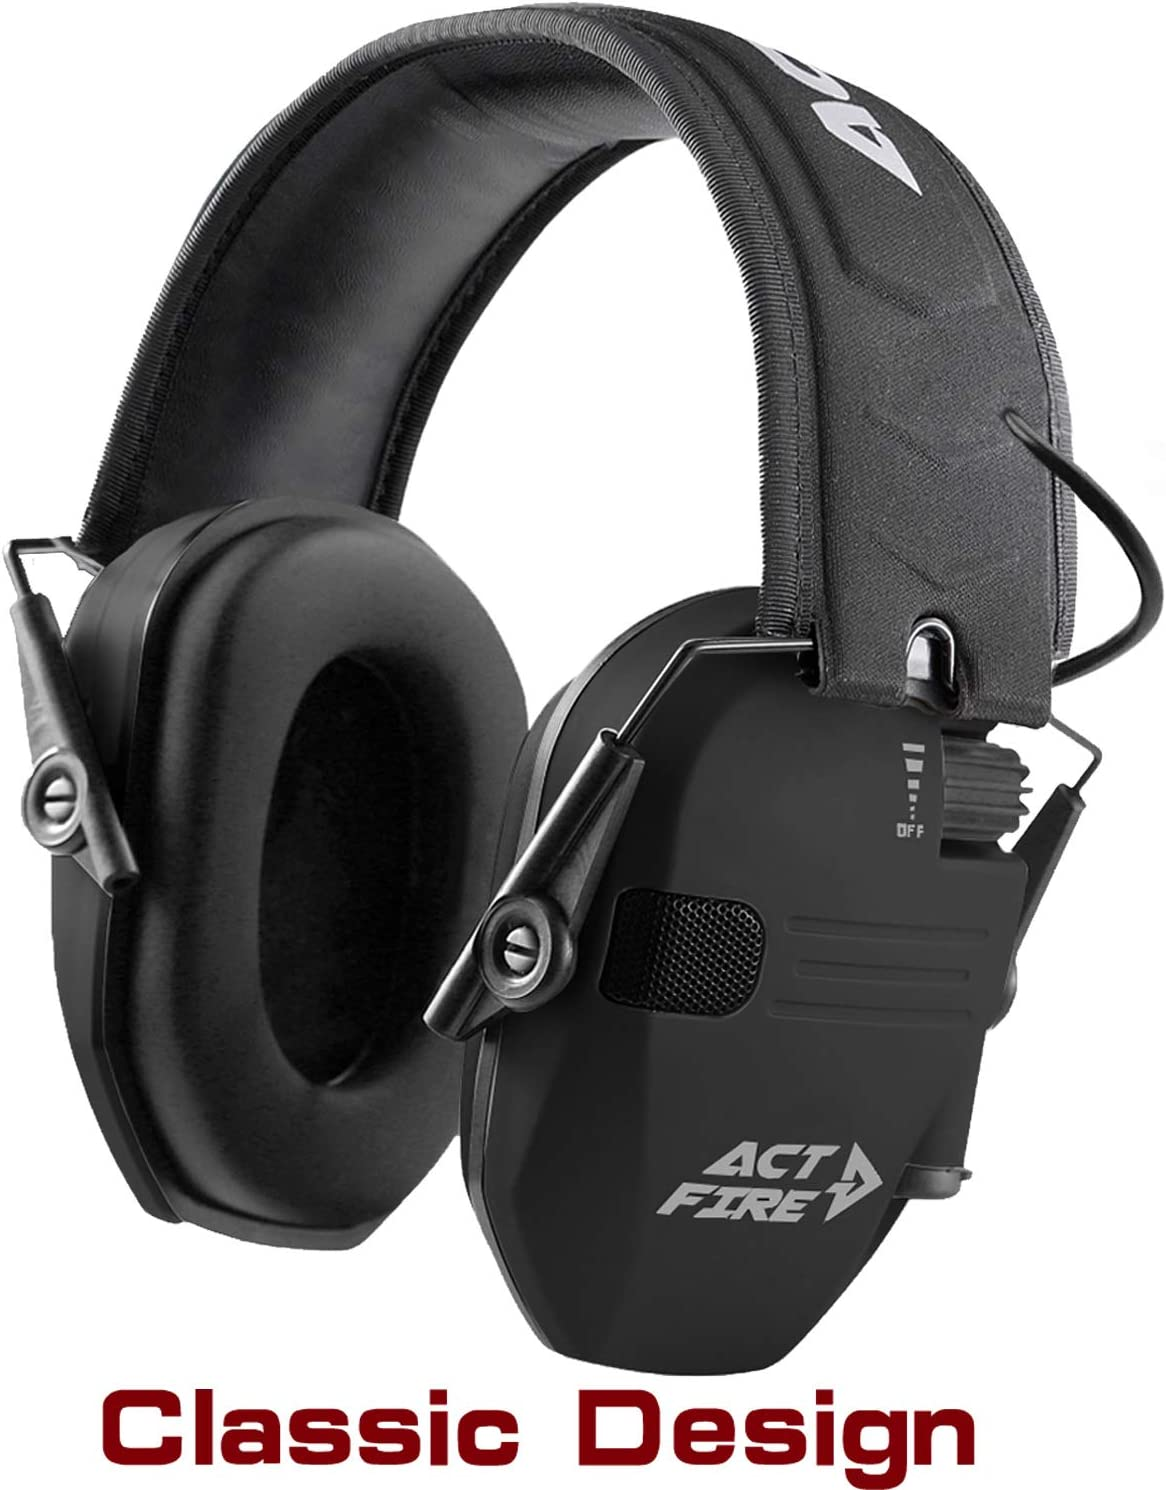 ACT FIRE Shooting Earmuffs Ear Protection for Gun Range Ultimate Combat Classic Design